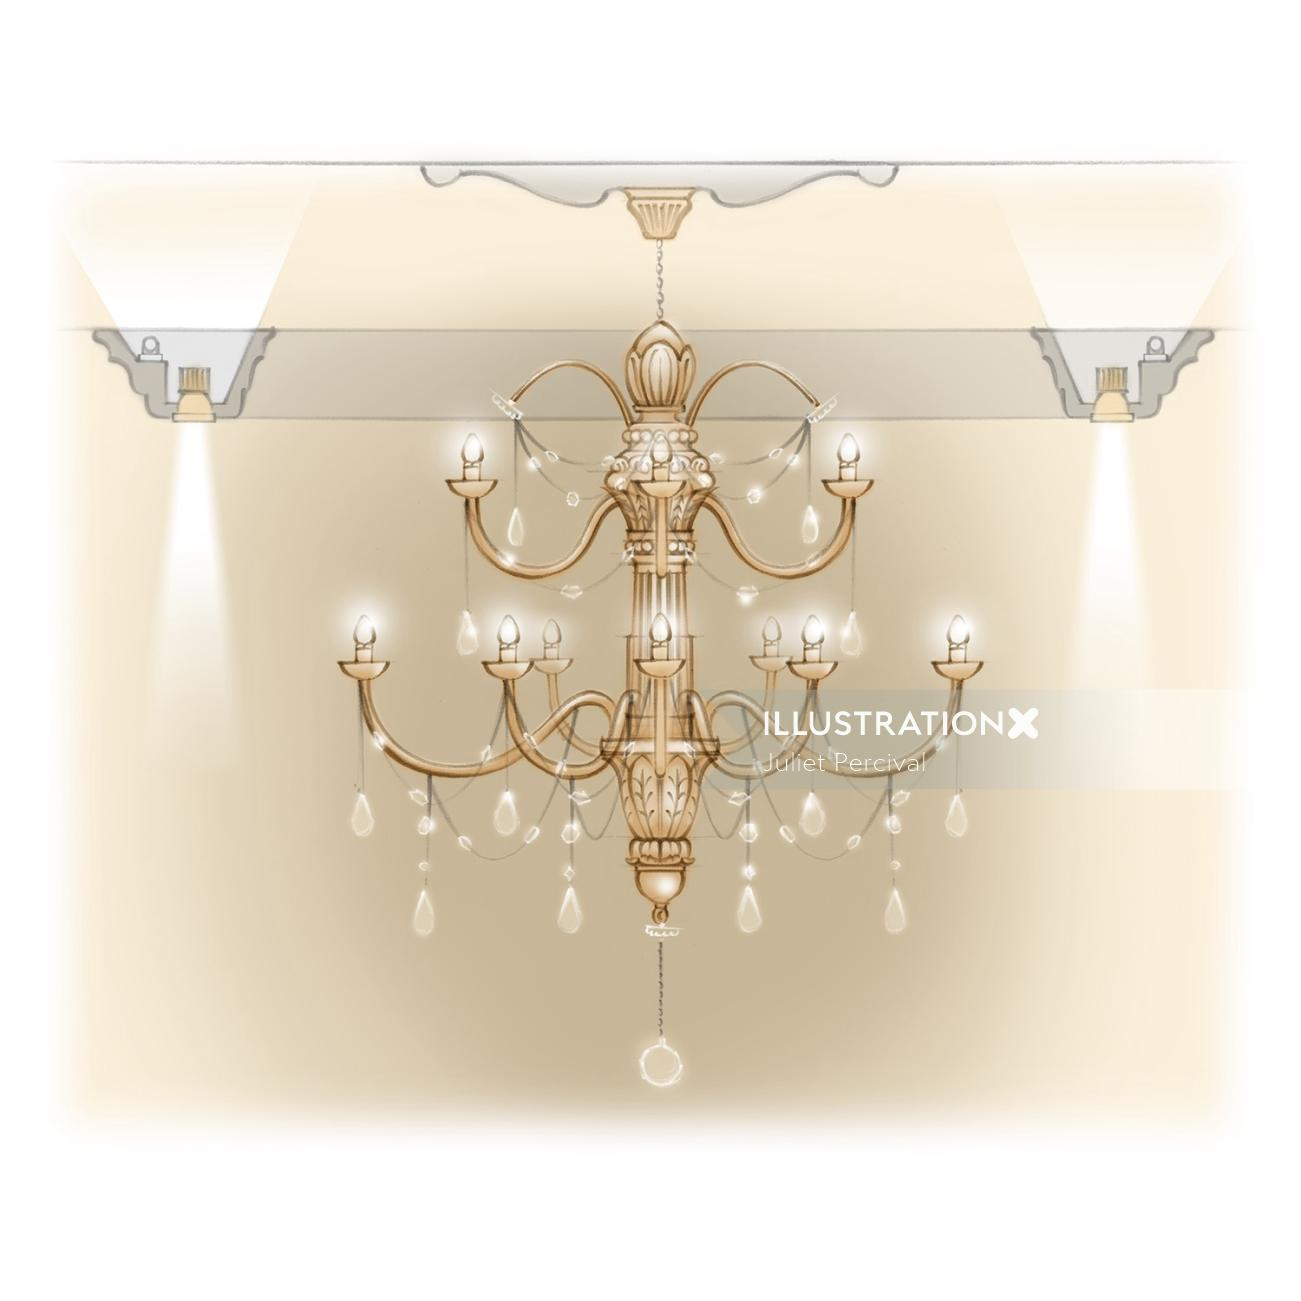 Chandelier, crystals, teardrops, illumination, product design, lighting